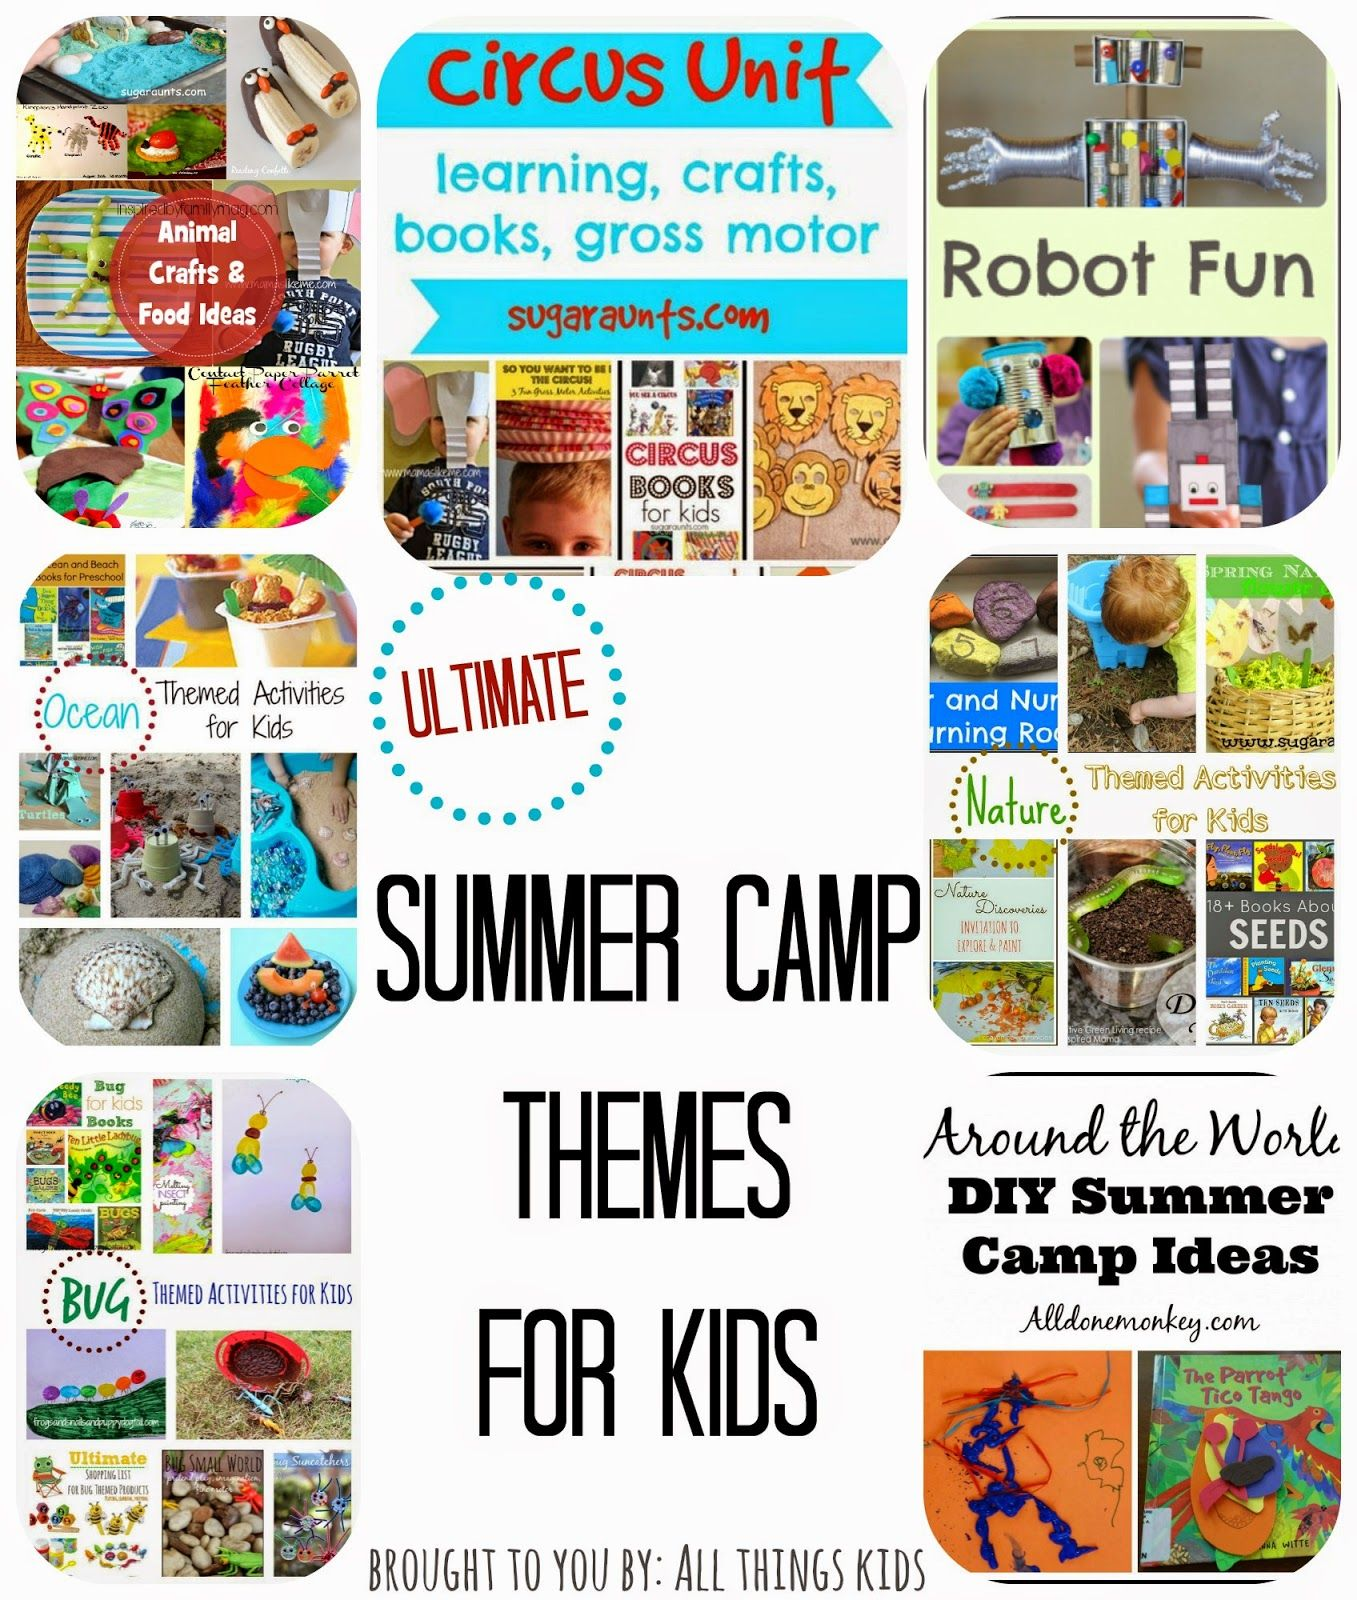 summer camp themes for kids | summer camp | summer camp themes